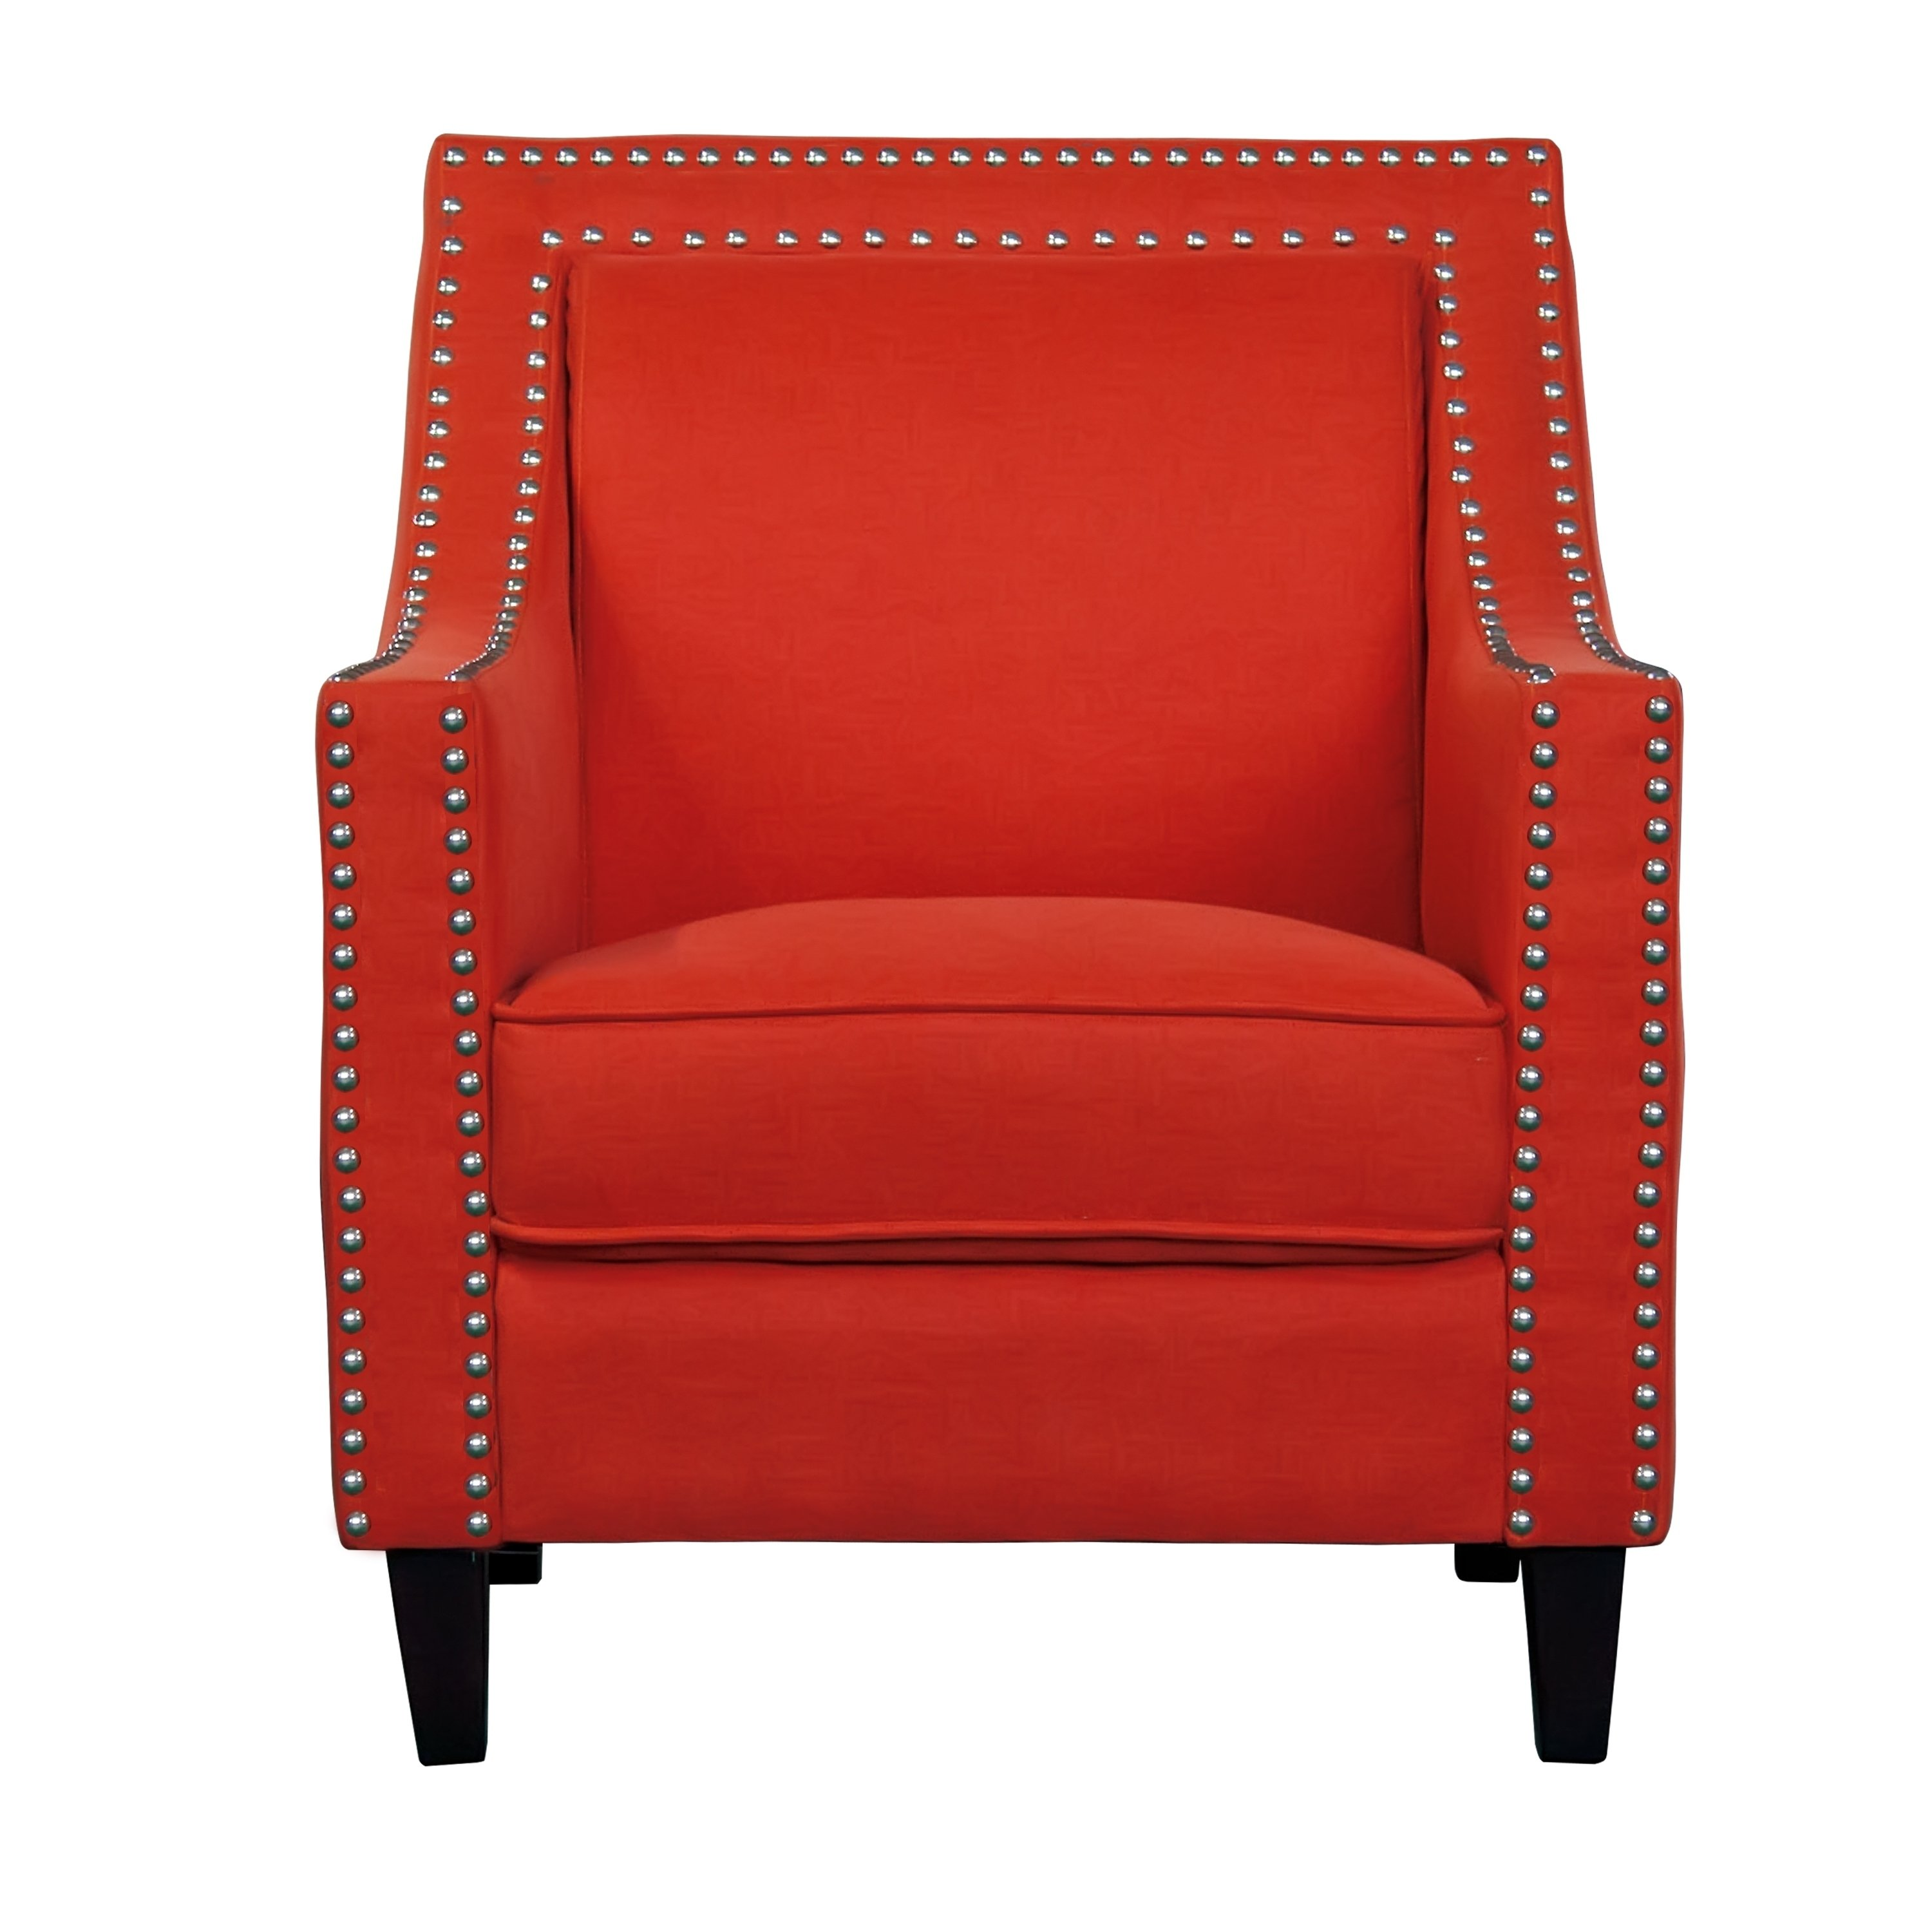 Peachy Transitional Nailhead Trim Accent Chair In Blue As Is Item Onthecornerstone Fun Painted Chair Ideas Images Onthecornerstoneorg